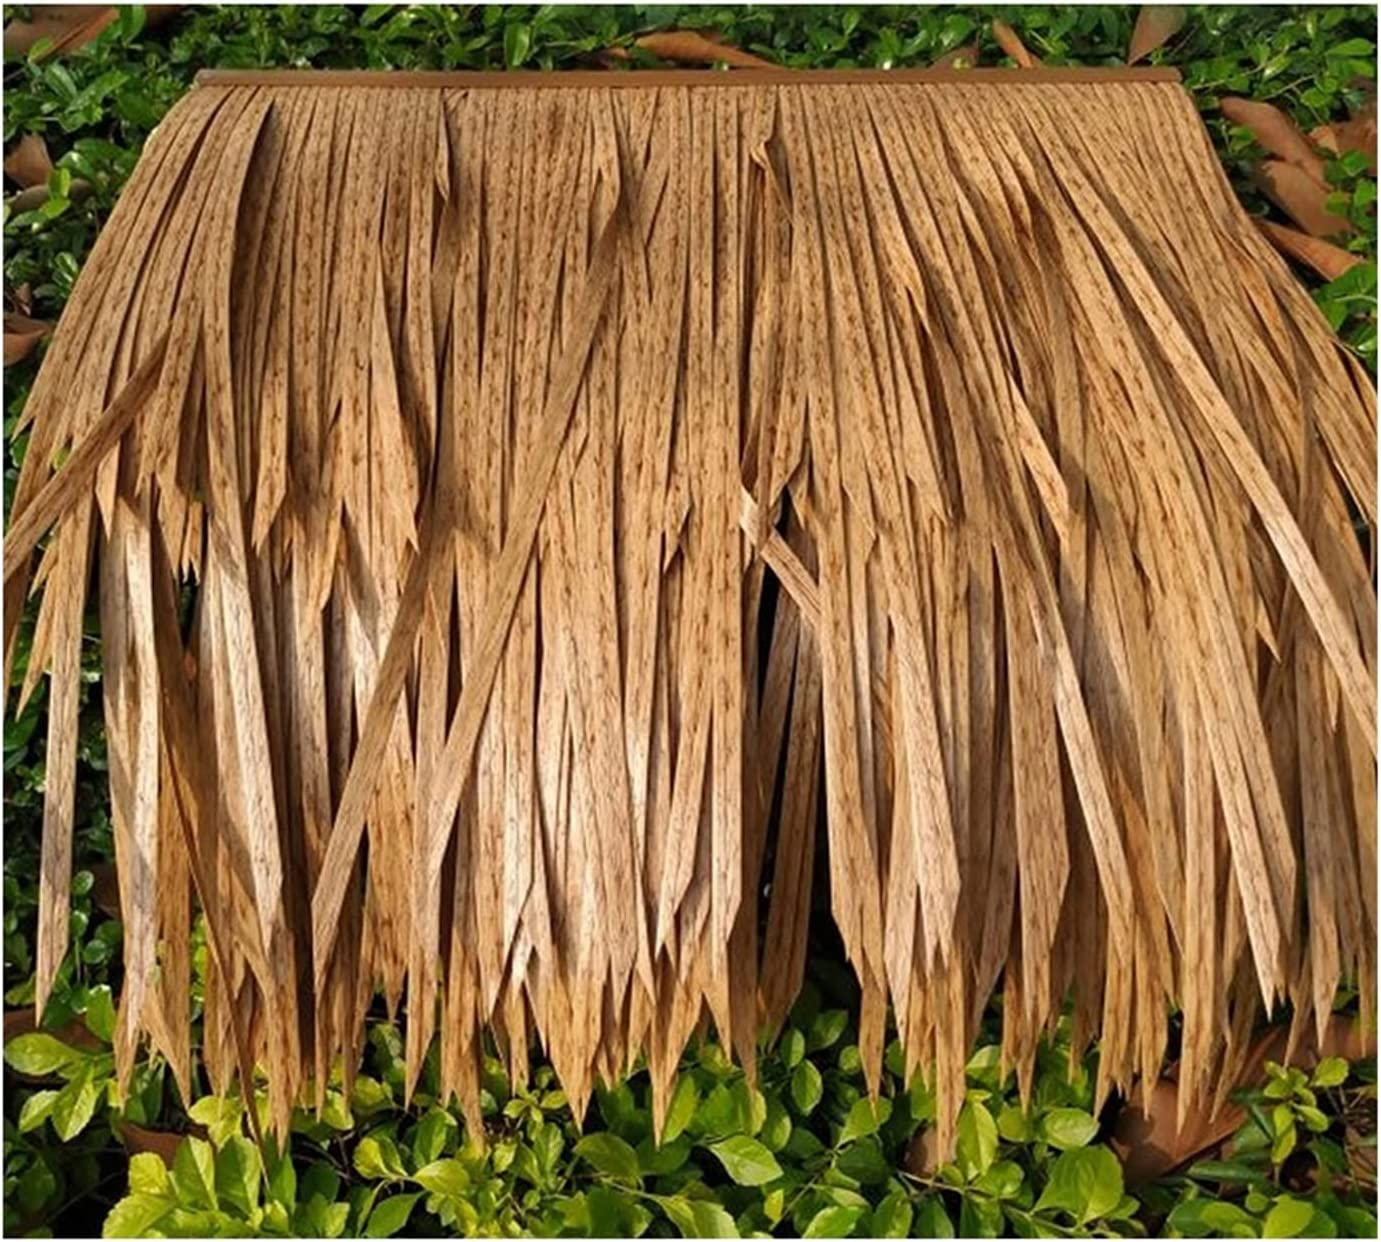 Fake Straw Simulation Wholesale Thatch Plastic Max 87% OFF Tile Wool Man-Made PV